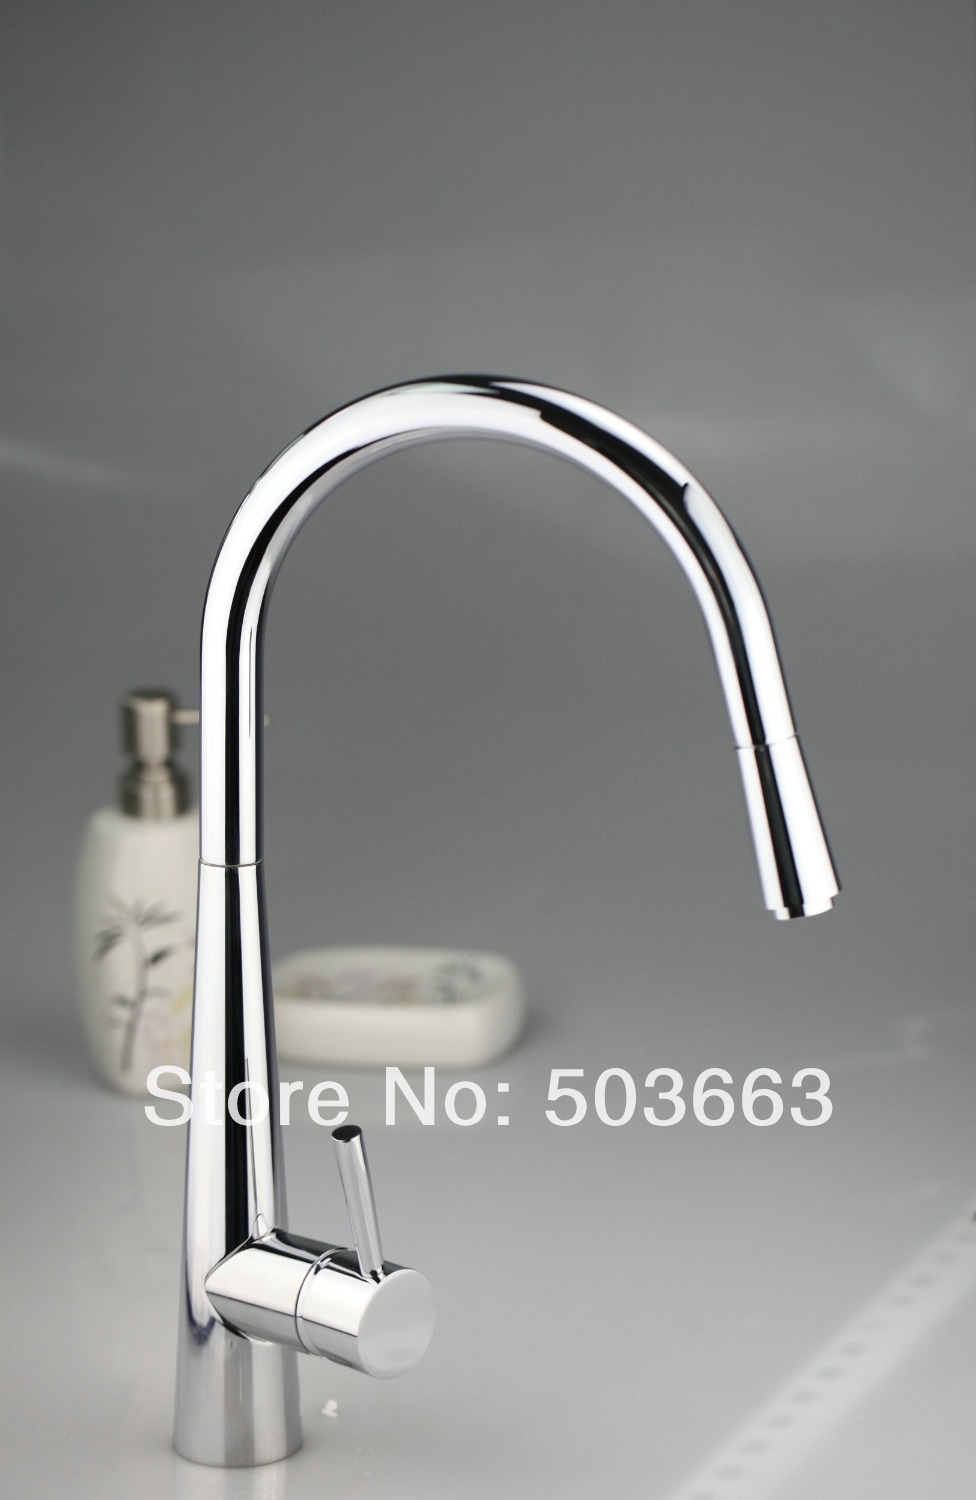 Good Quality Chrome Brass Water Kitchen Faucet Swivel Spout Pull Out Vessel Sink Single Handle Deck Mounted Mixer Tap MF-376 good quality chrome finished pull out